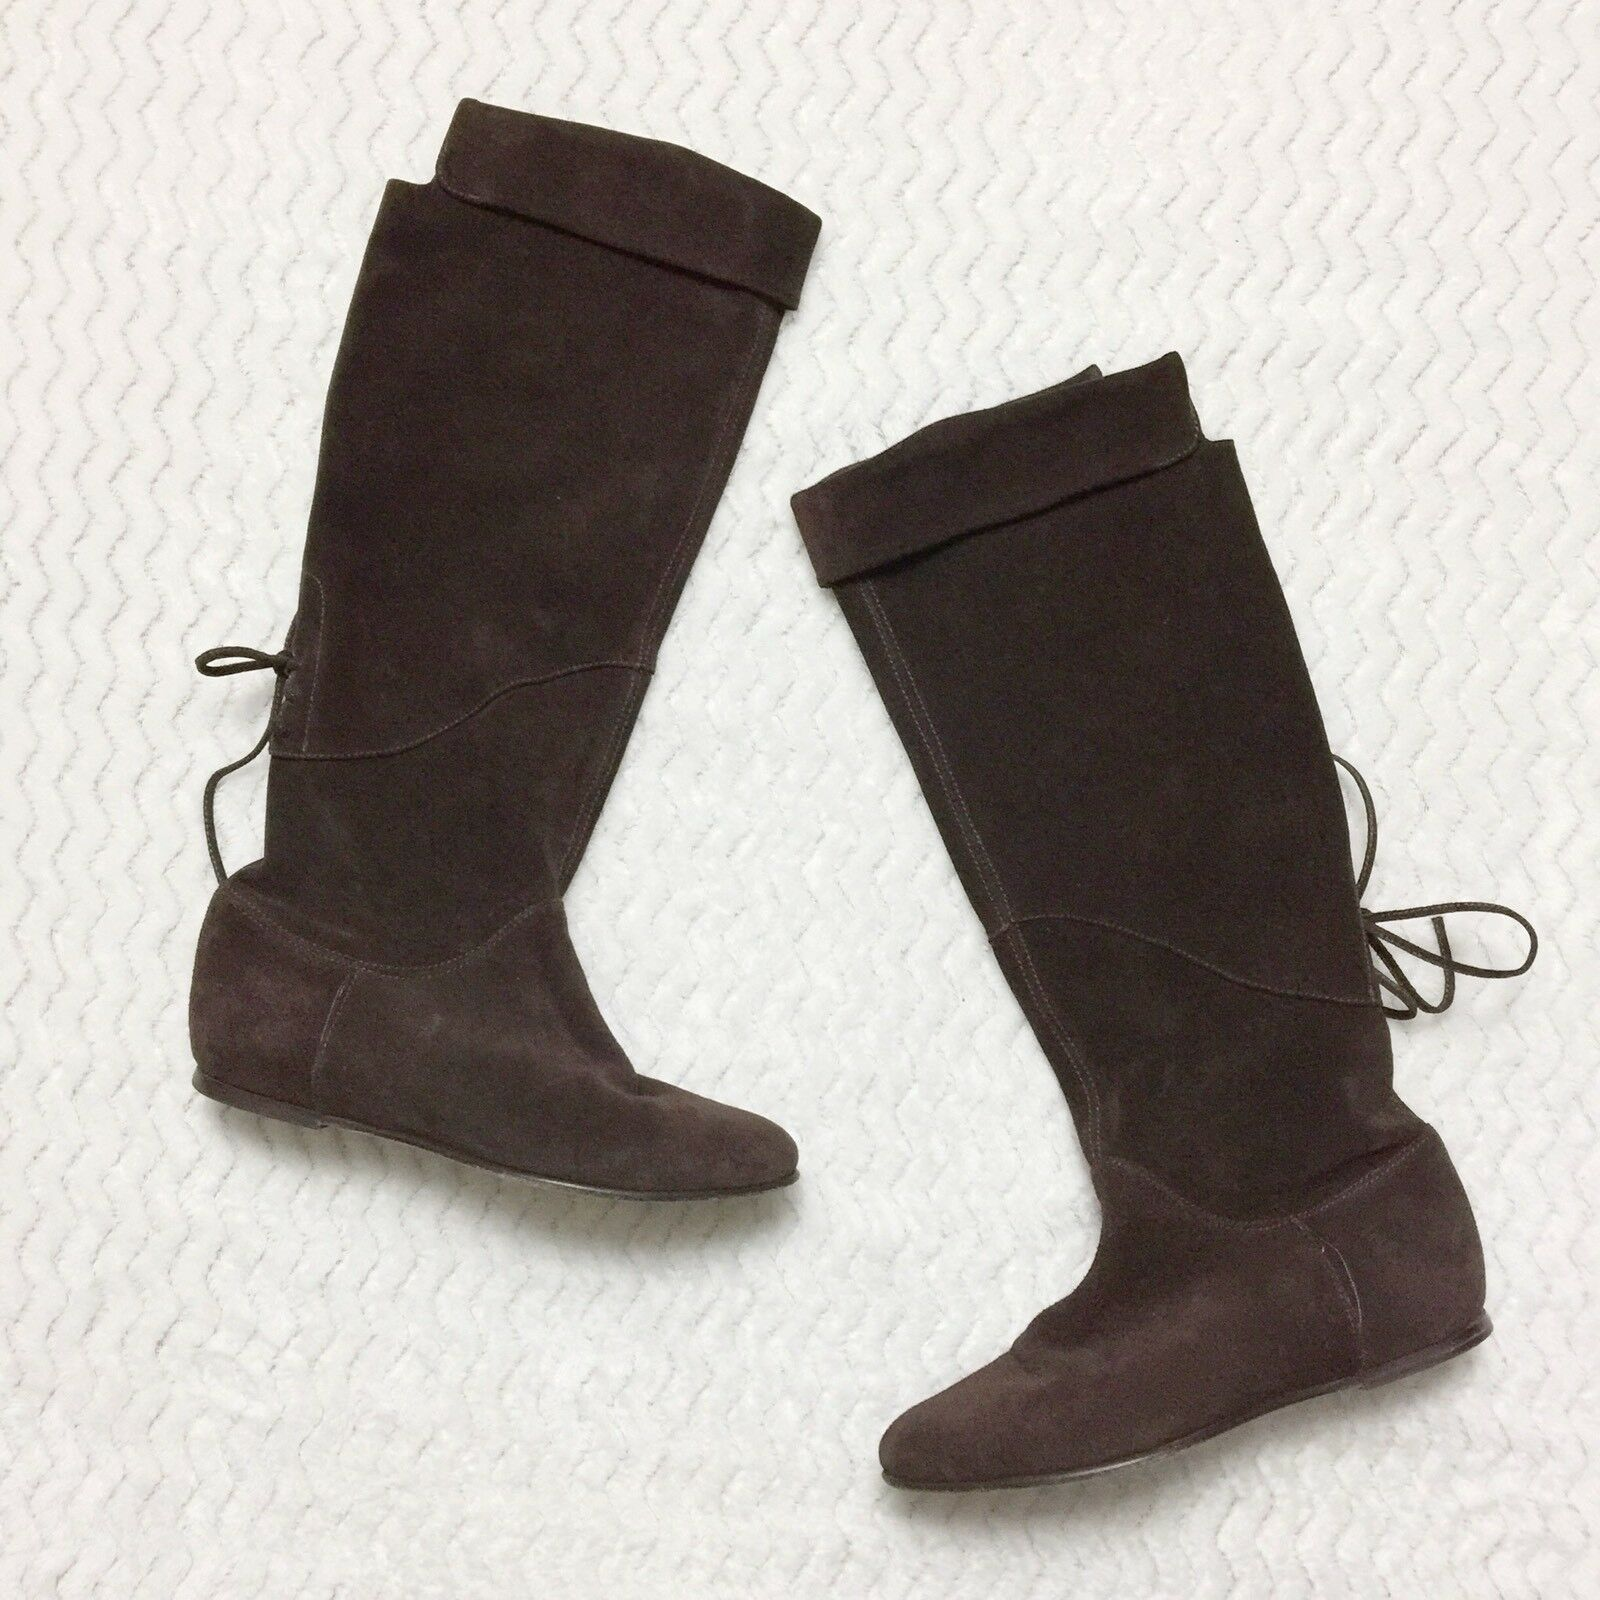 Joie Heidi Suede Slouch Boots Cuffed Top Corset Lacing Brown Leather Size 6.5